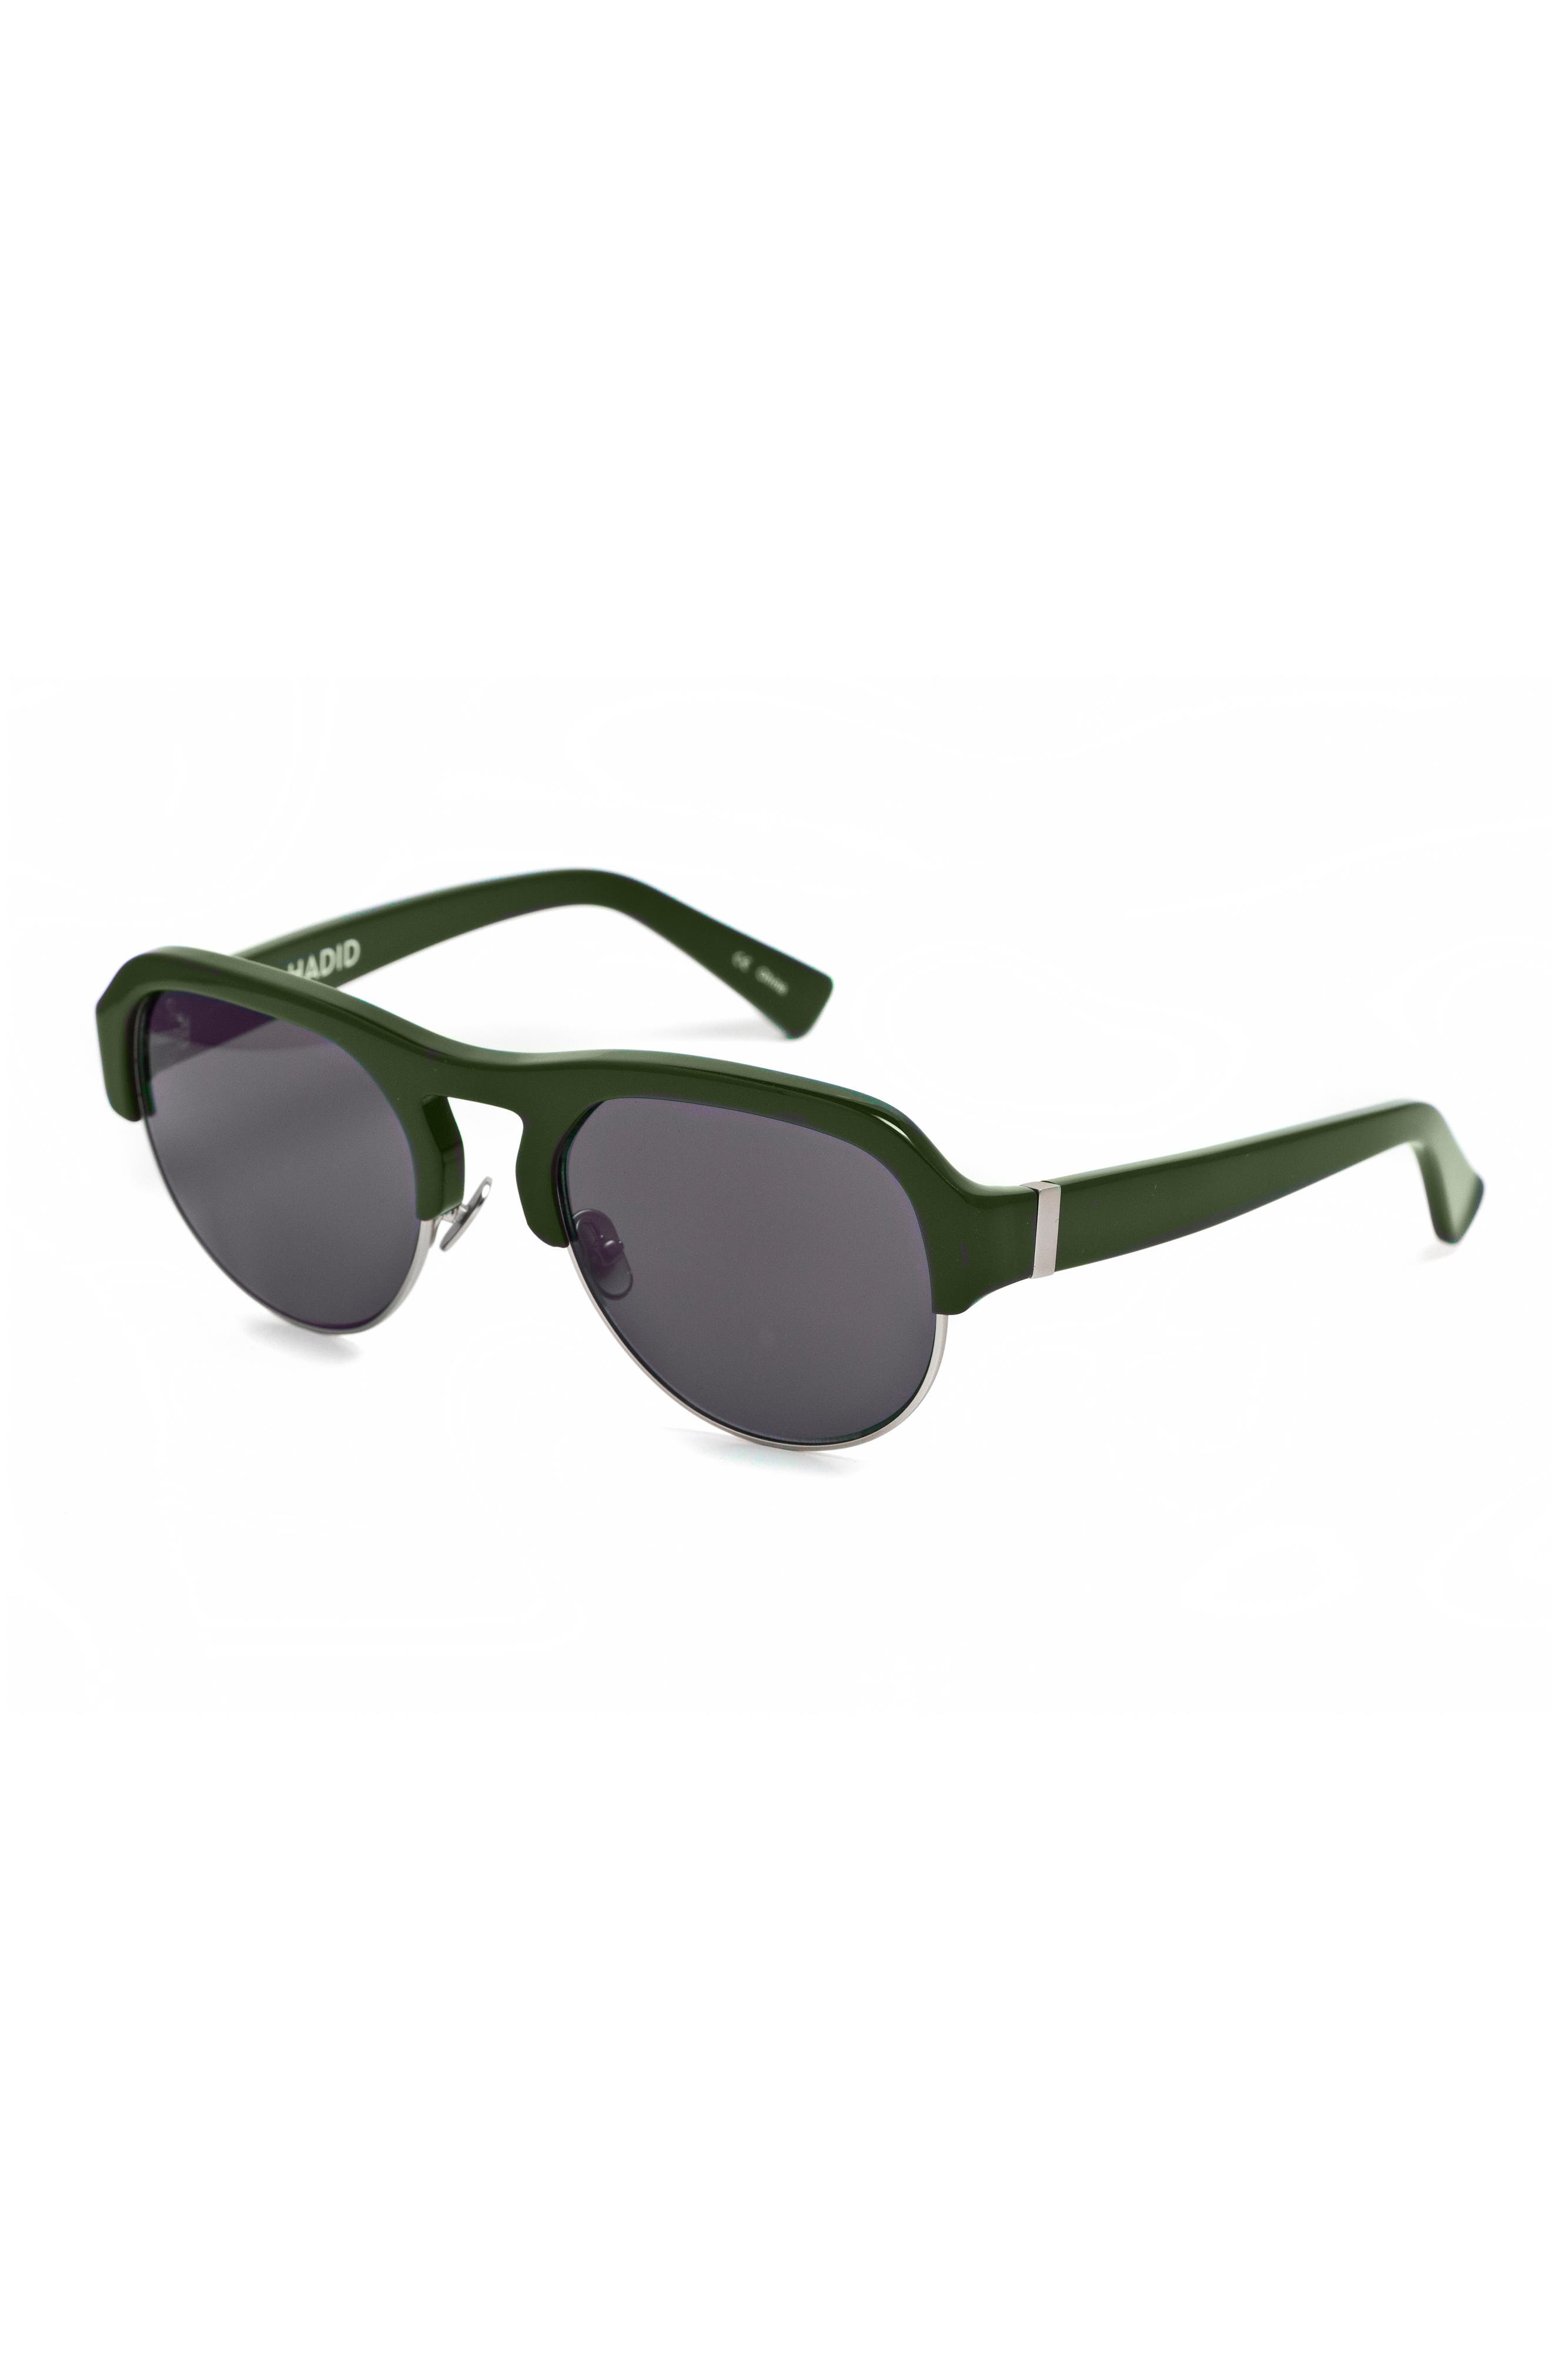 Nomad 52mm Sunglasses,                             Alternate thumbnail 4, color,                             OLIVE/ SILVER